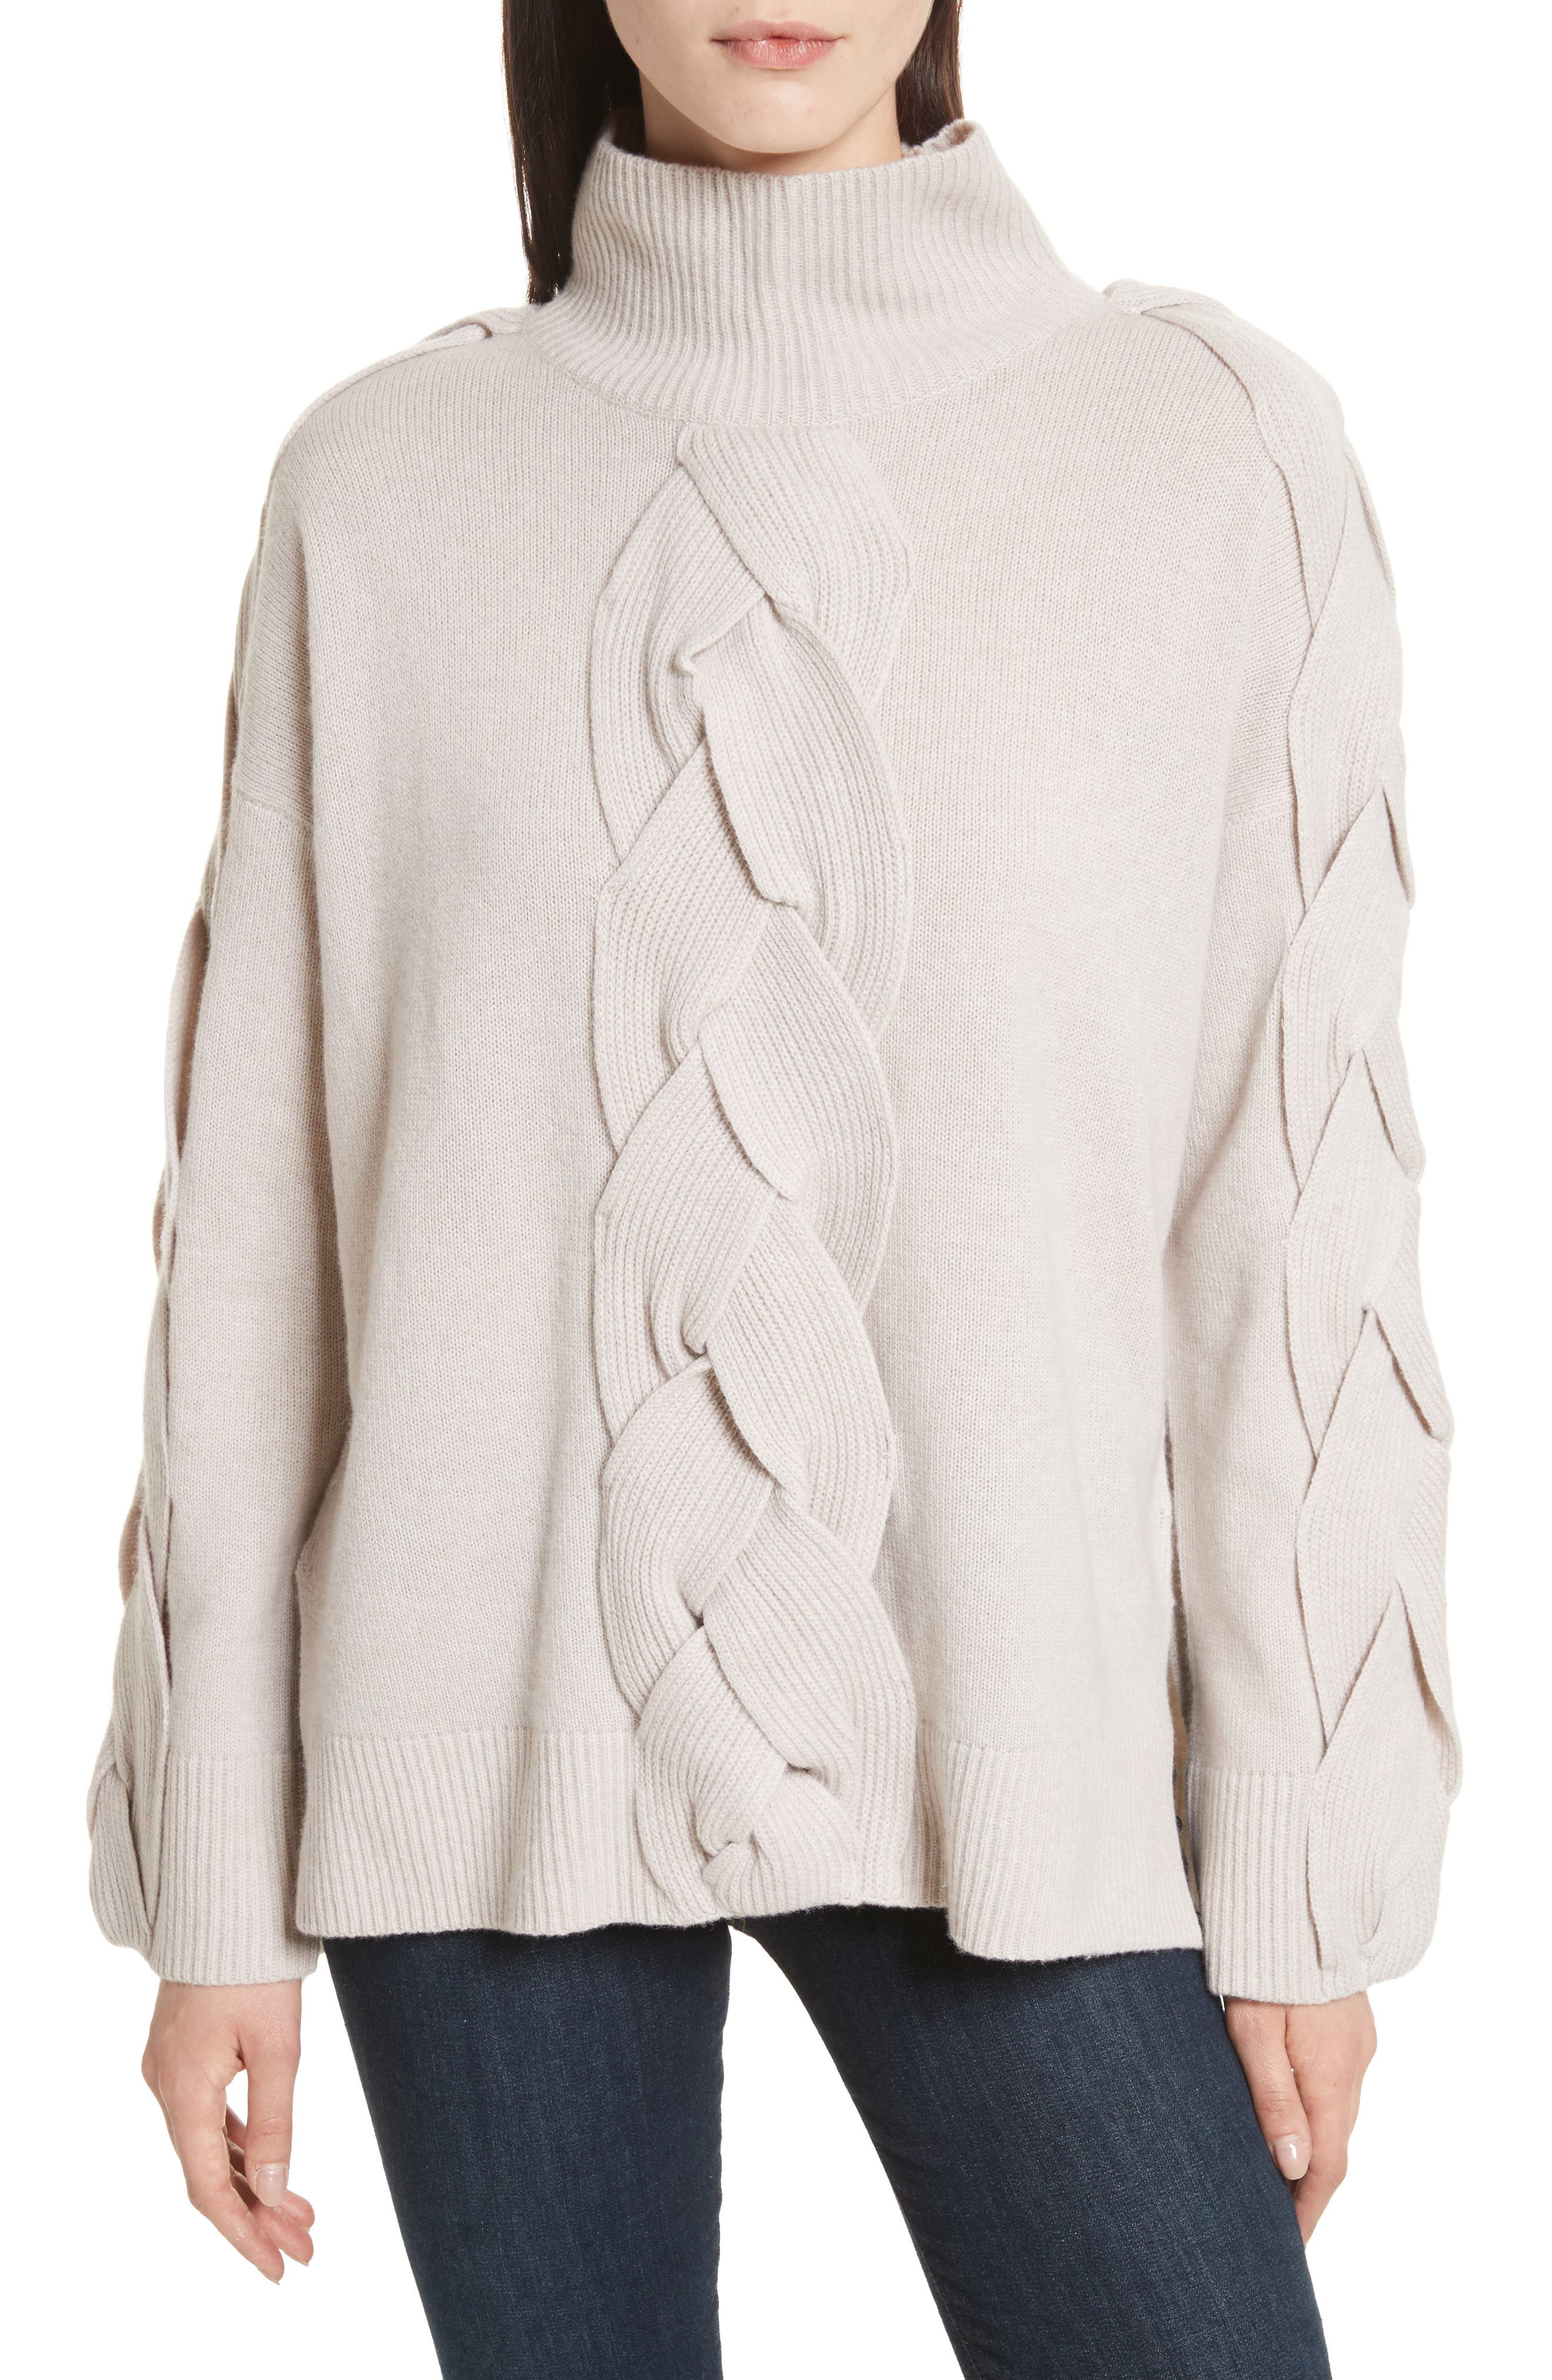 Fisherman Cable Knit Sweater,                         Main,                         color, Oatmeal